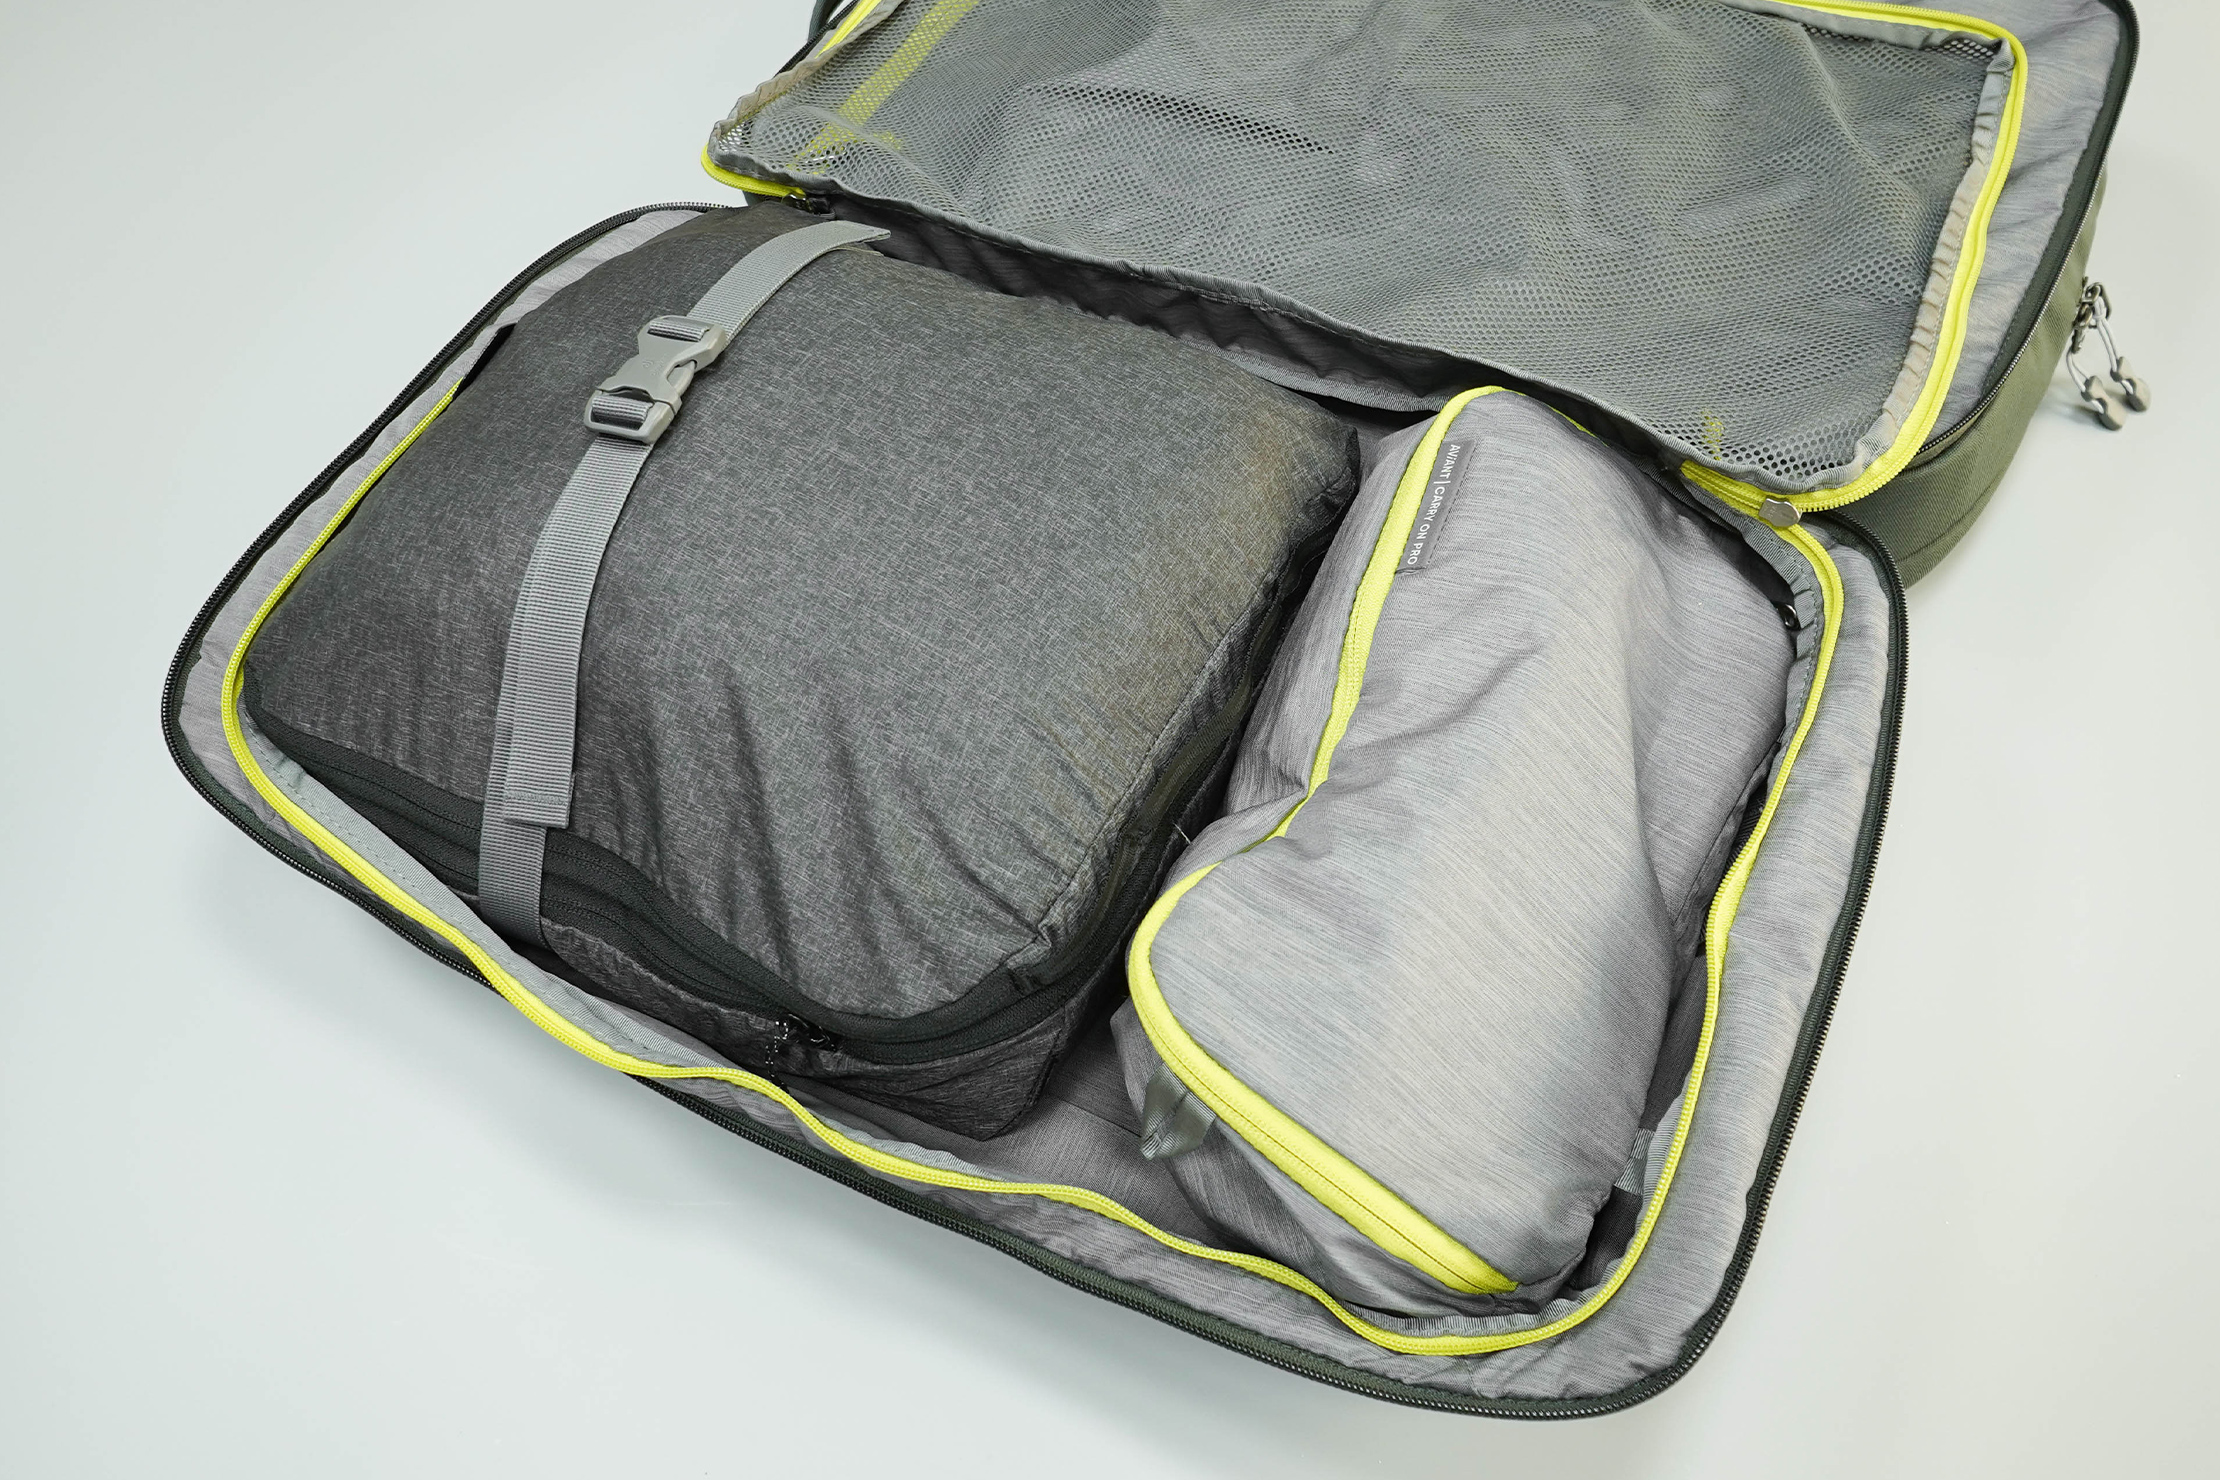 Deuter AViANT Carry On Pro 36 Main Compartment Packed